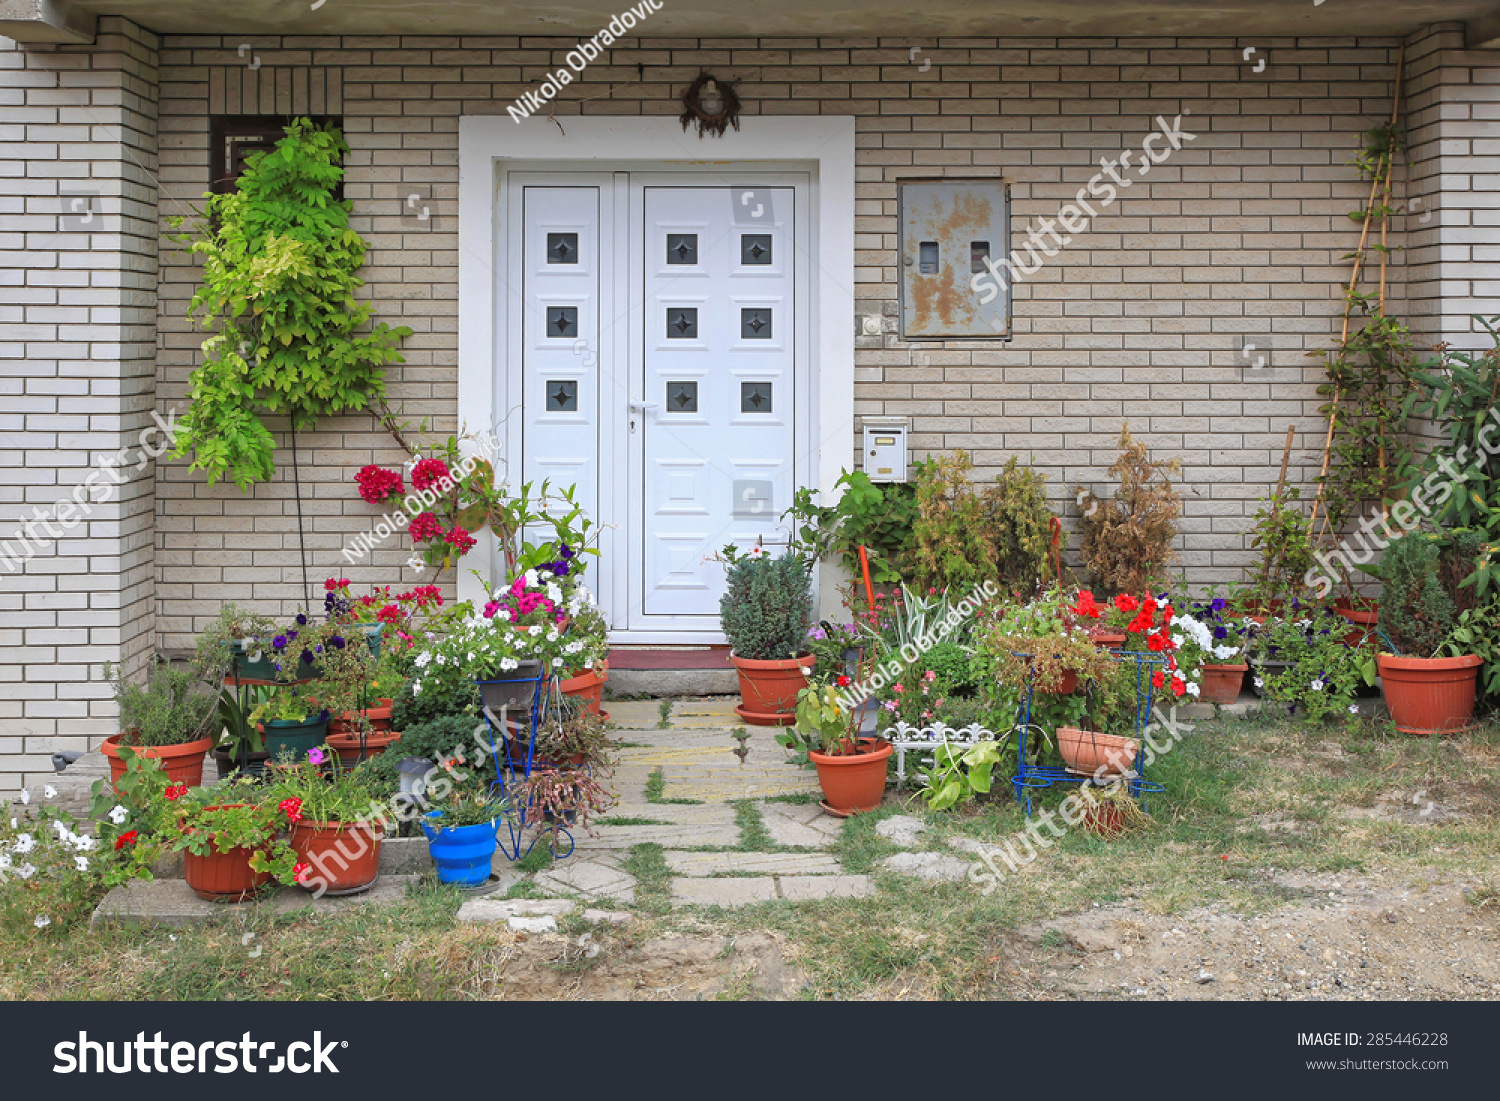 Flowers And Plants In Front Of House Entrance Stock Photo